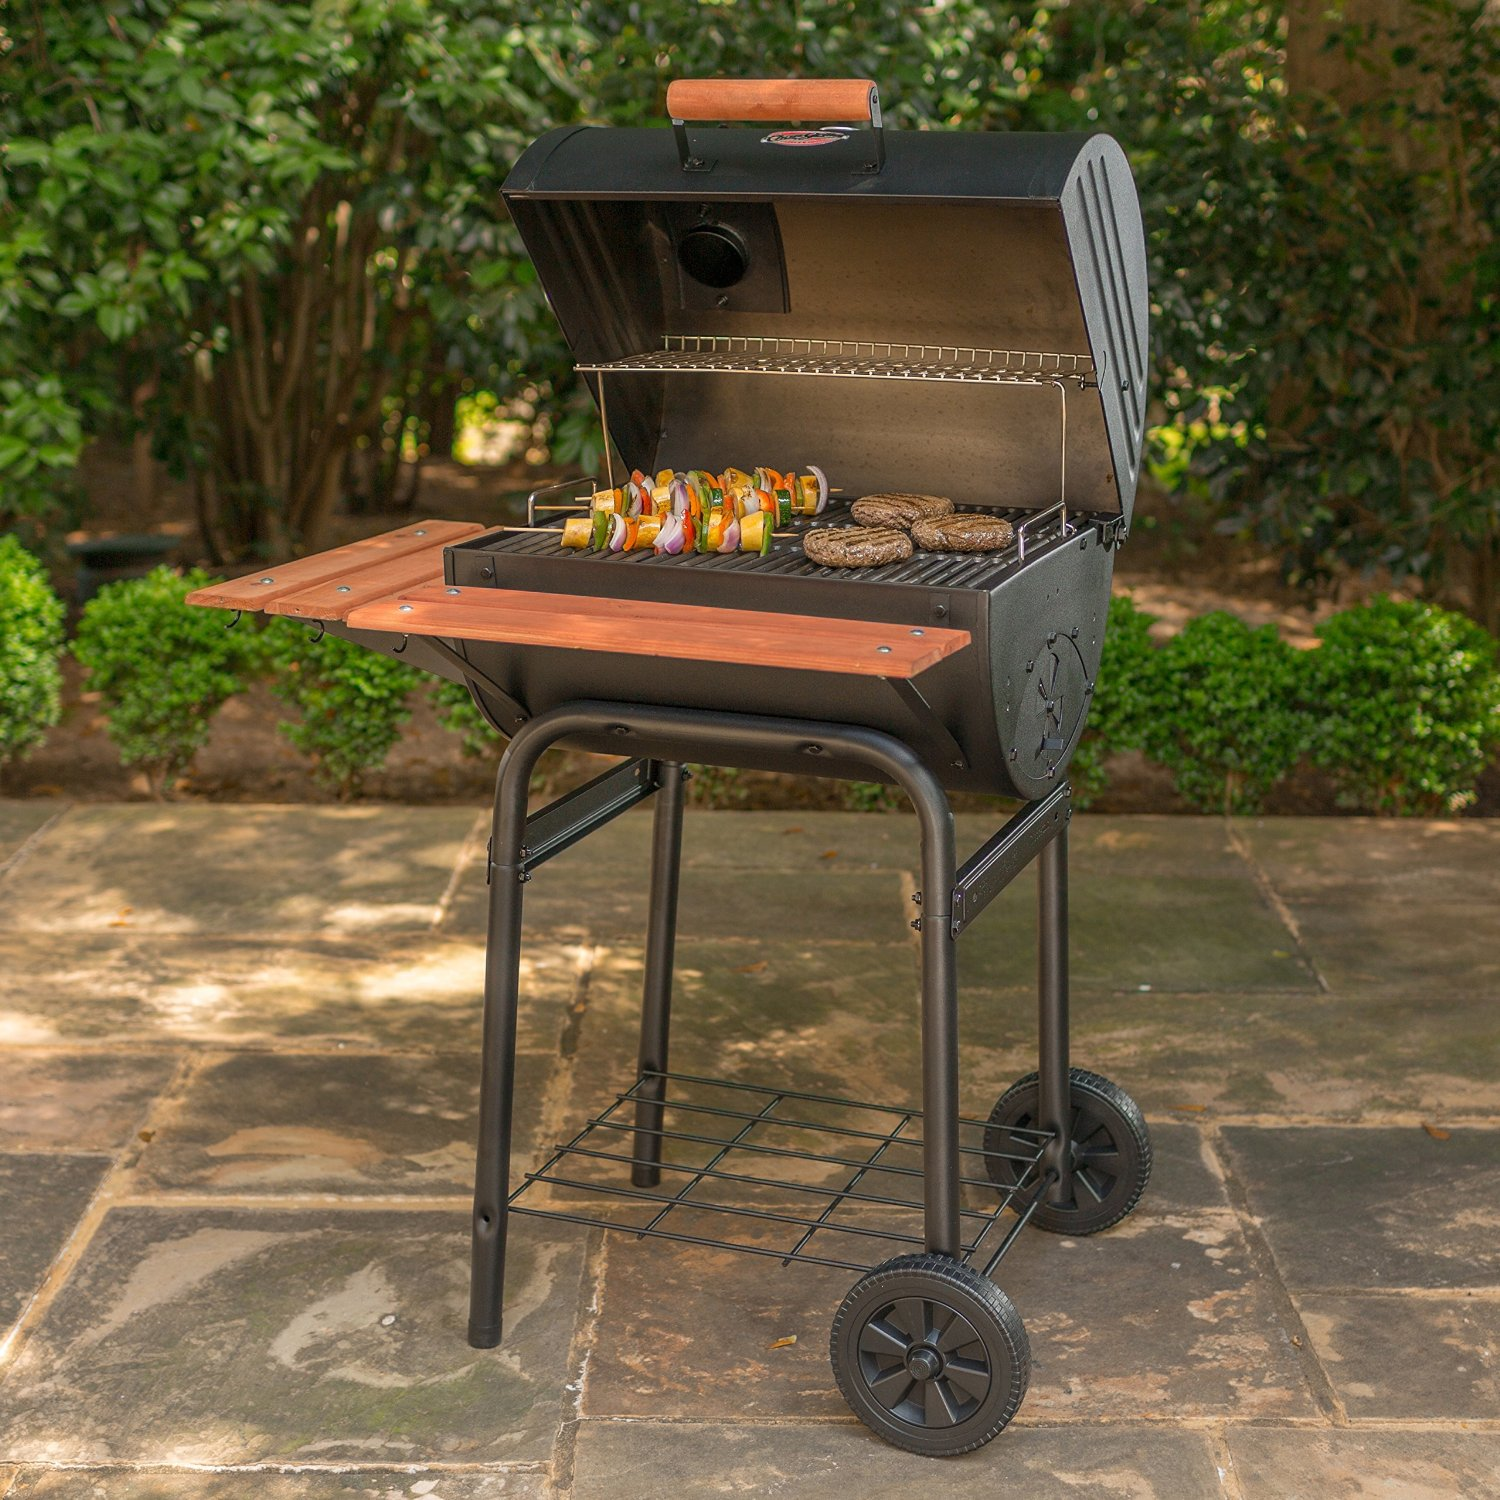 10 Best Charcoal Grills 2019 - Home & Outdoor Charcoal ...